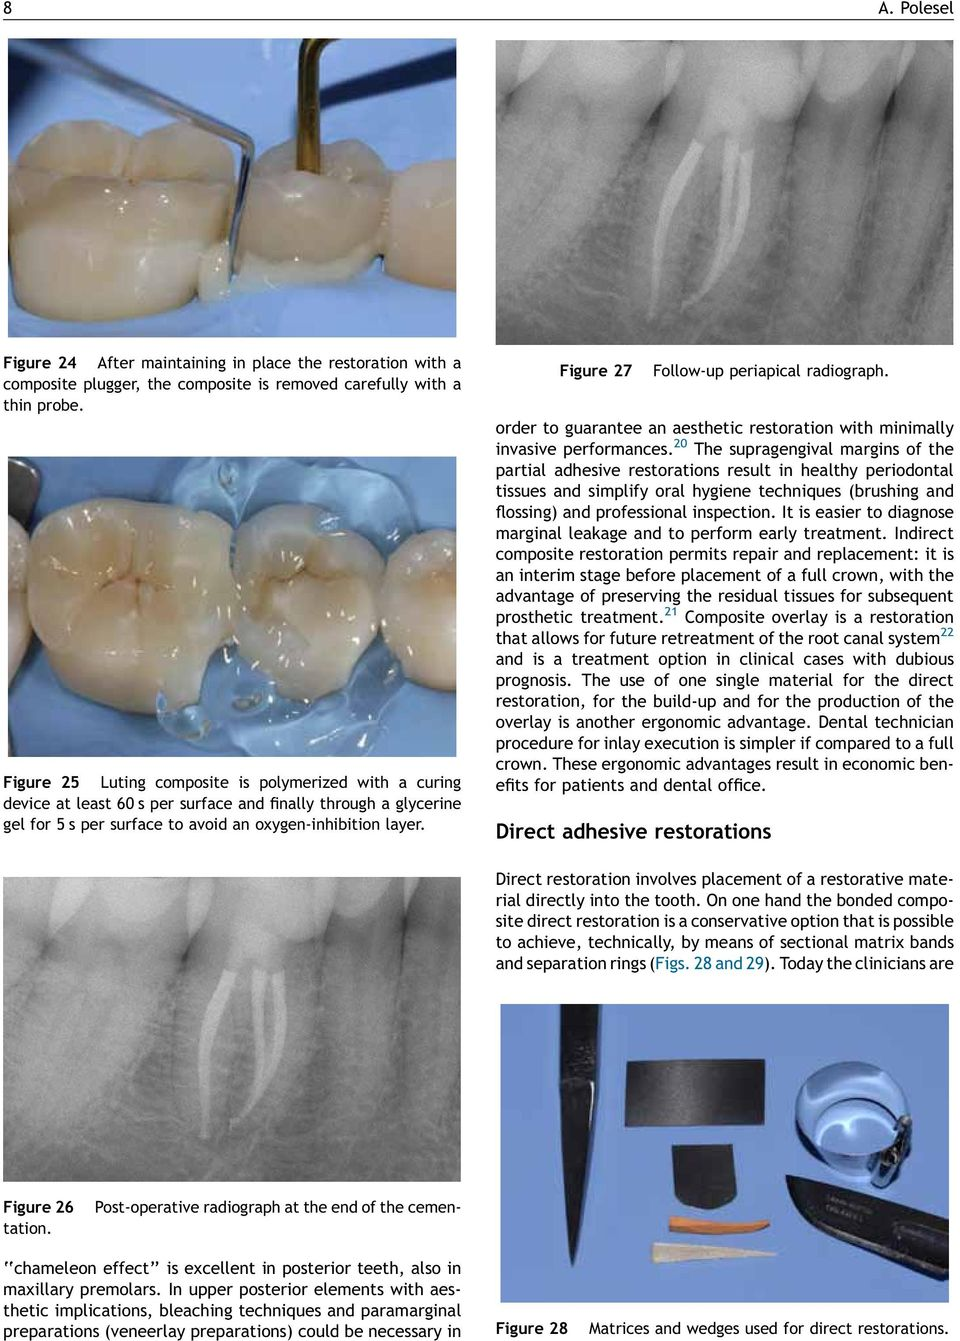 Figure 27 Follow-up periapical radiograph. order to guarantee an aesthetic restoration with minimally invasive performances.